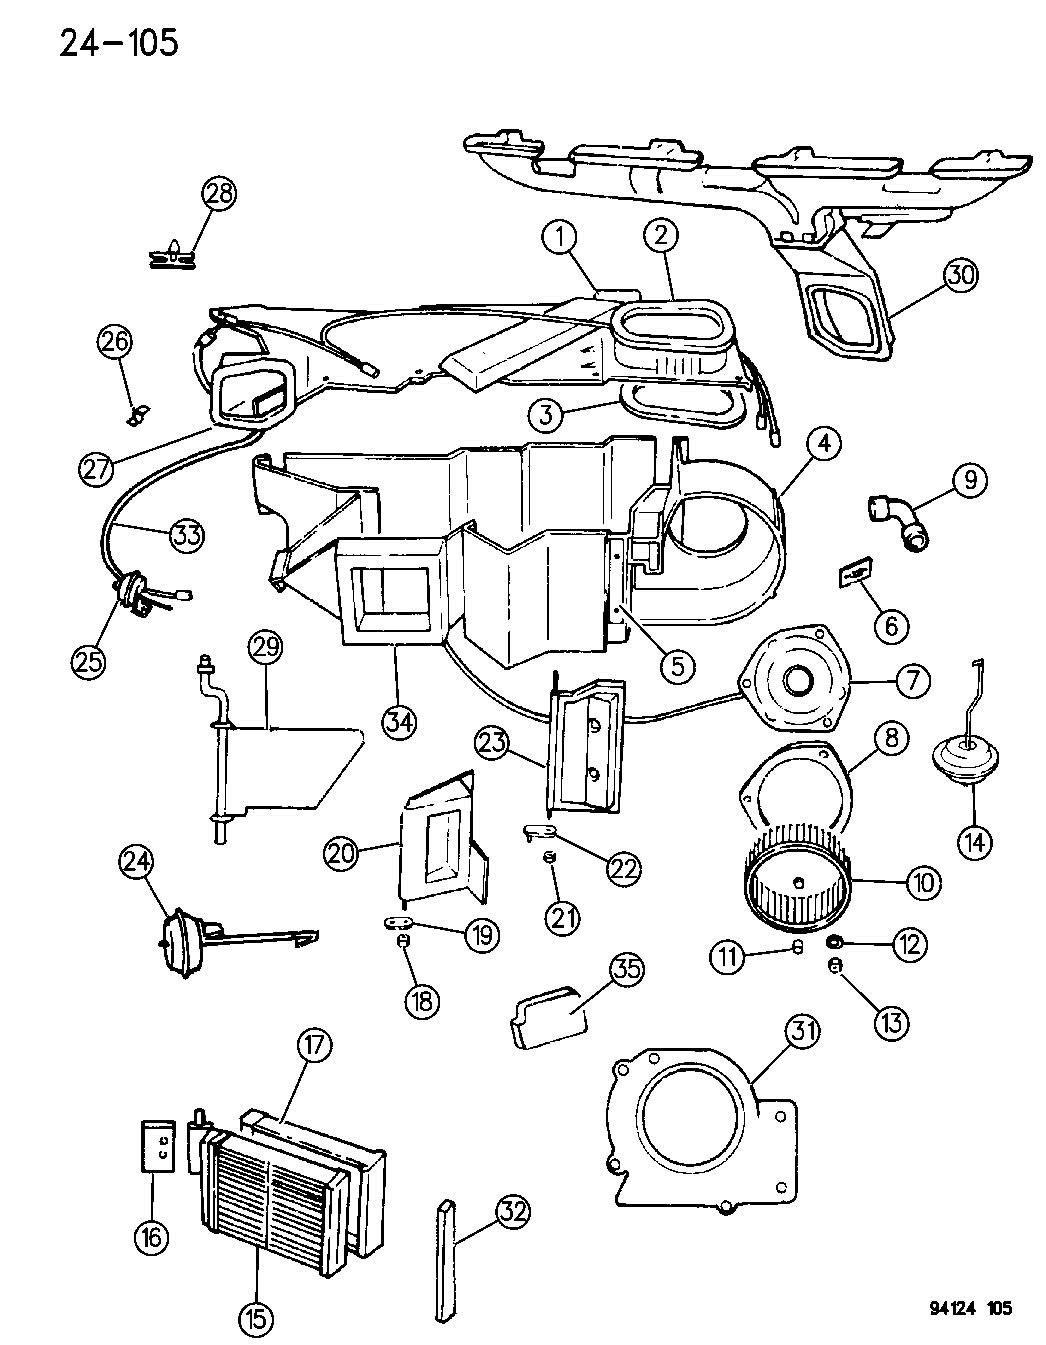 Lexus Rx300 Lights Wiring Diagram Great Design Of 2000 Rx 300 Fuse Trailer Imageresizertool Com Coolant Fan Blower Motor